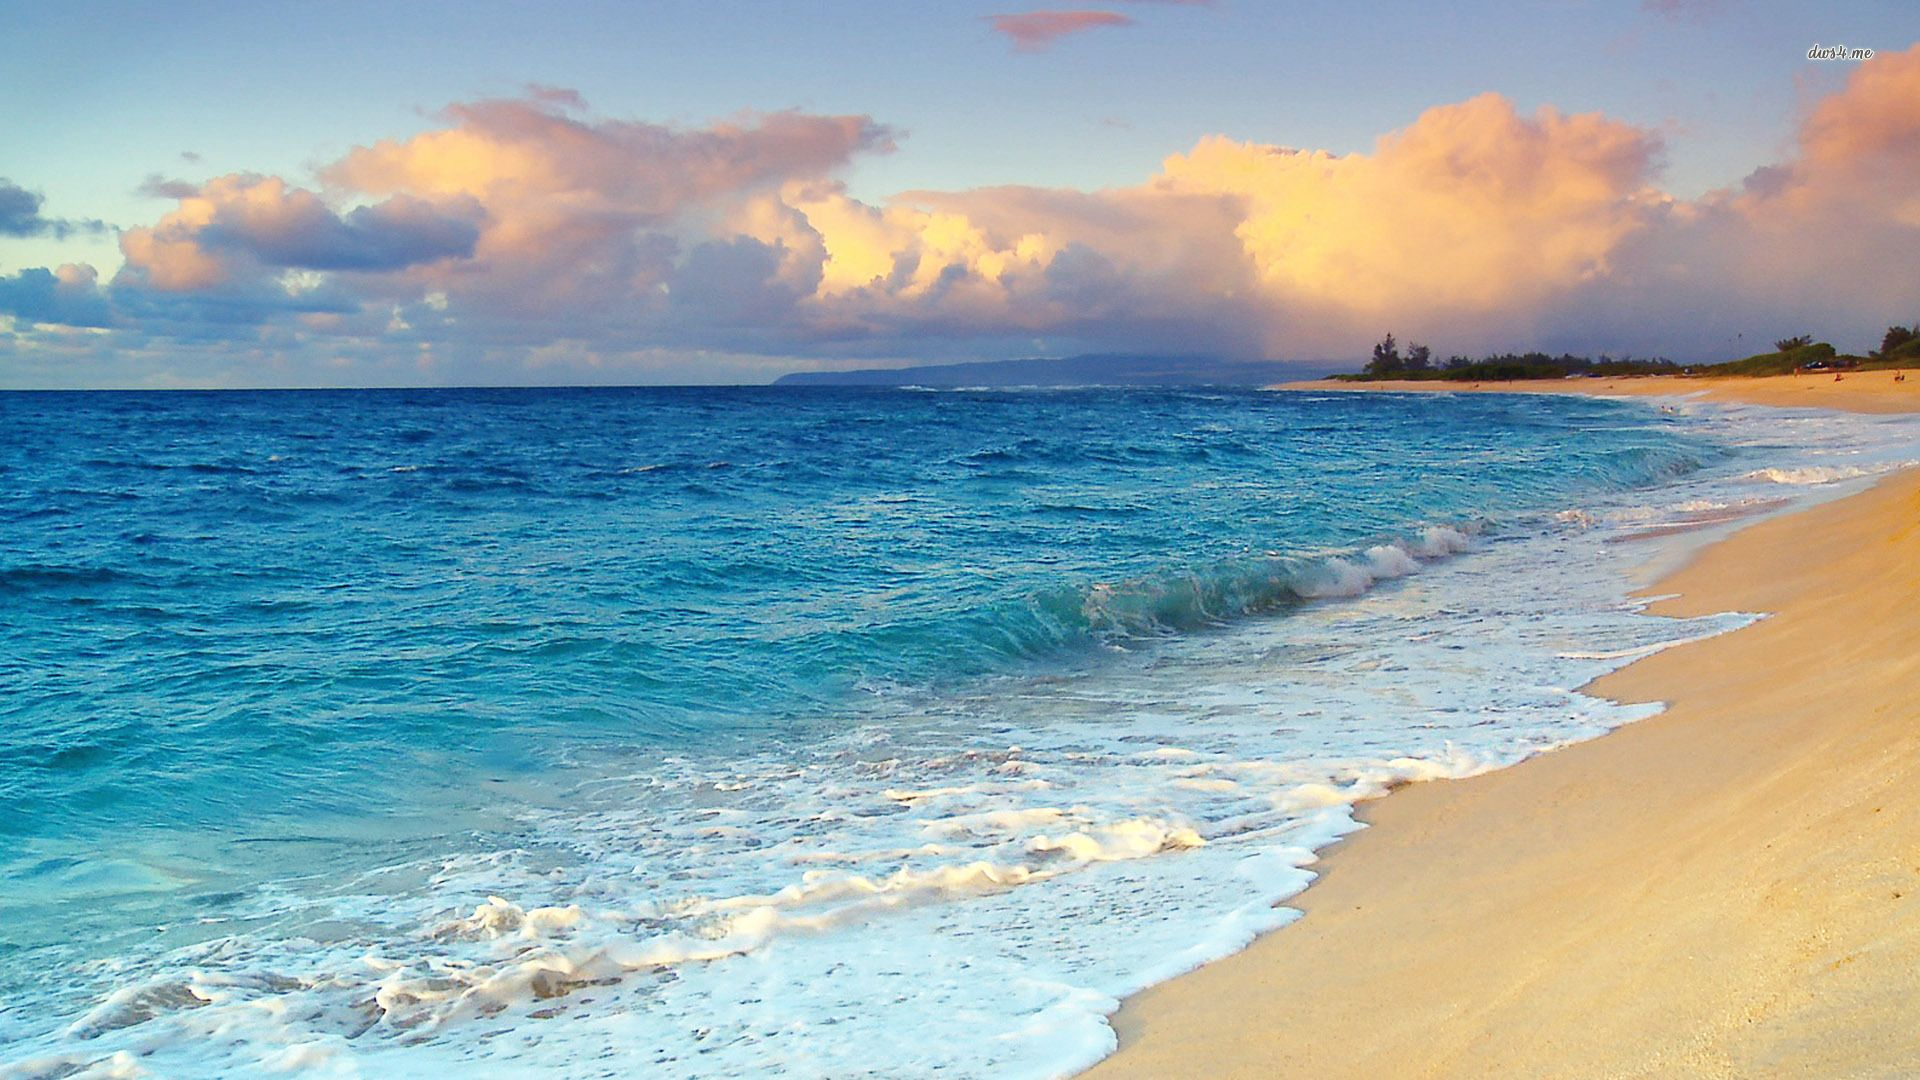 Hawaii Beach Wallpaper Hd Free: Hawaii Beach Wallpaper 1280x800